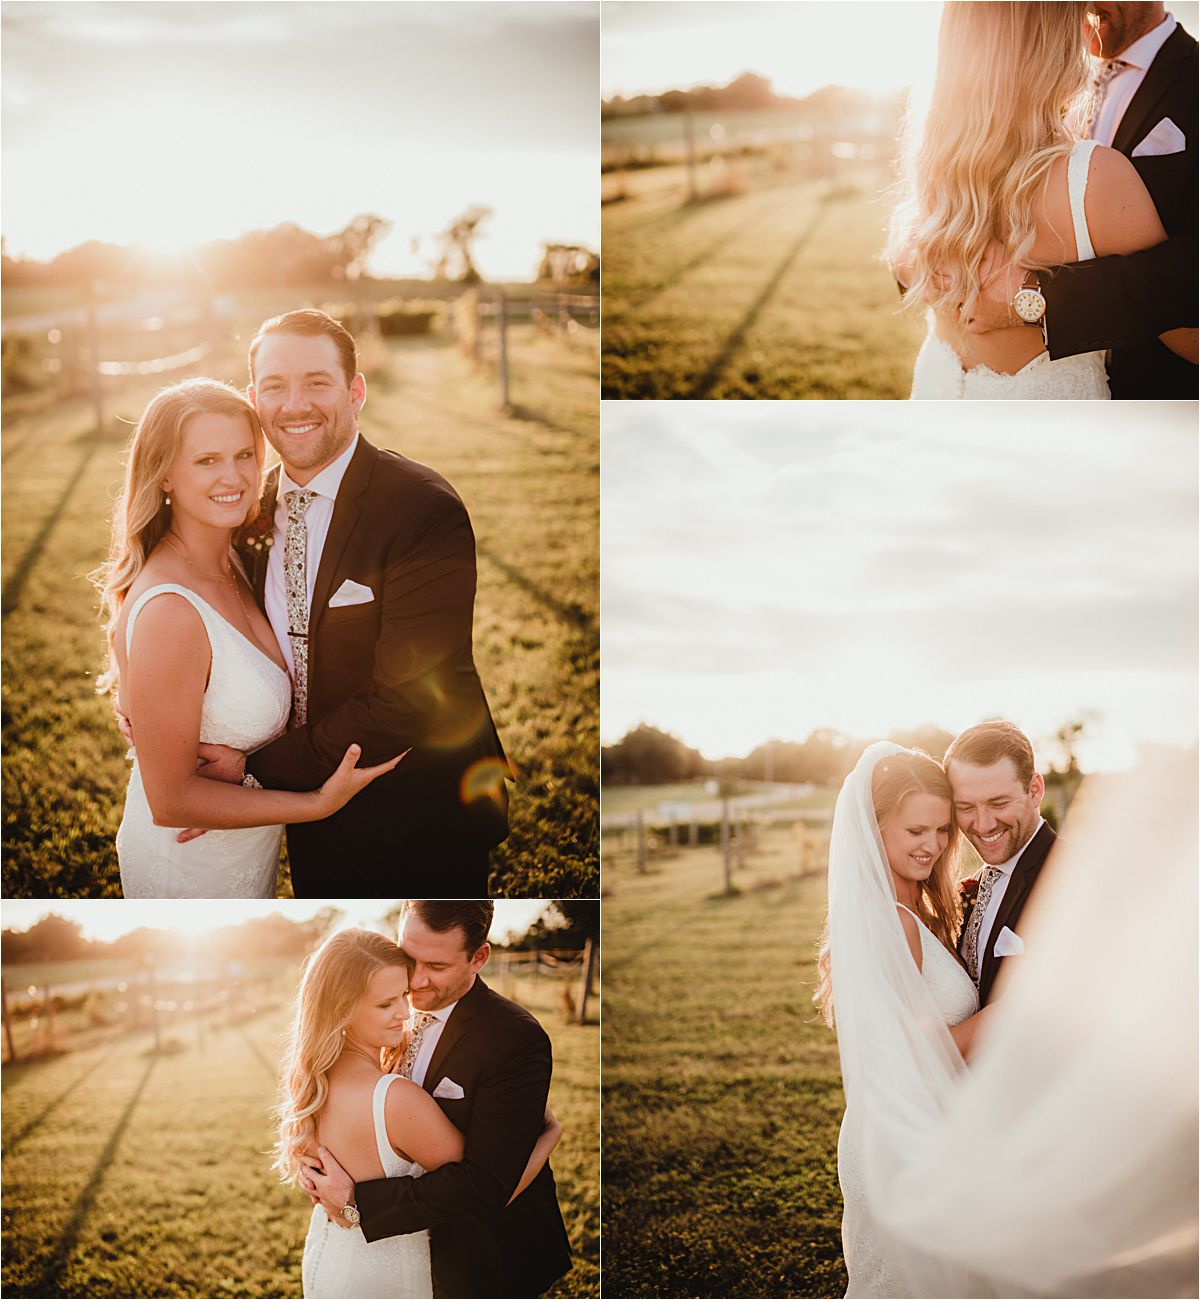 Intimate Outdoor Summer Wedding Couple in Field at Sunset